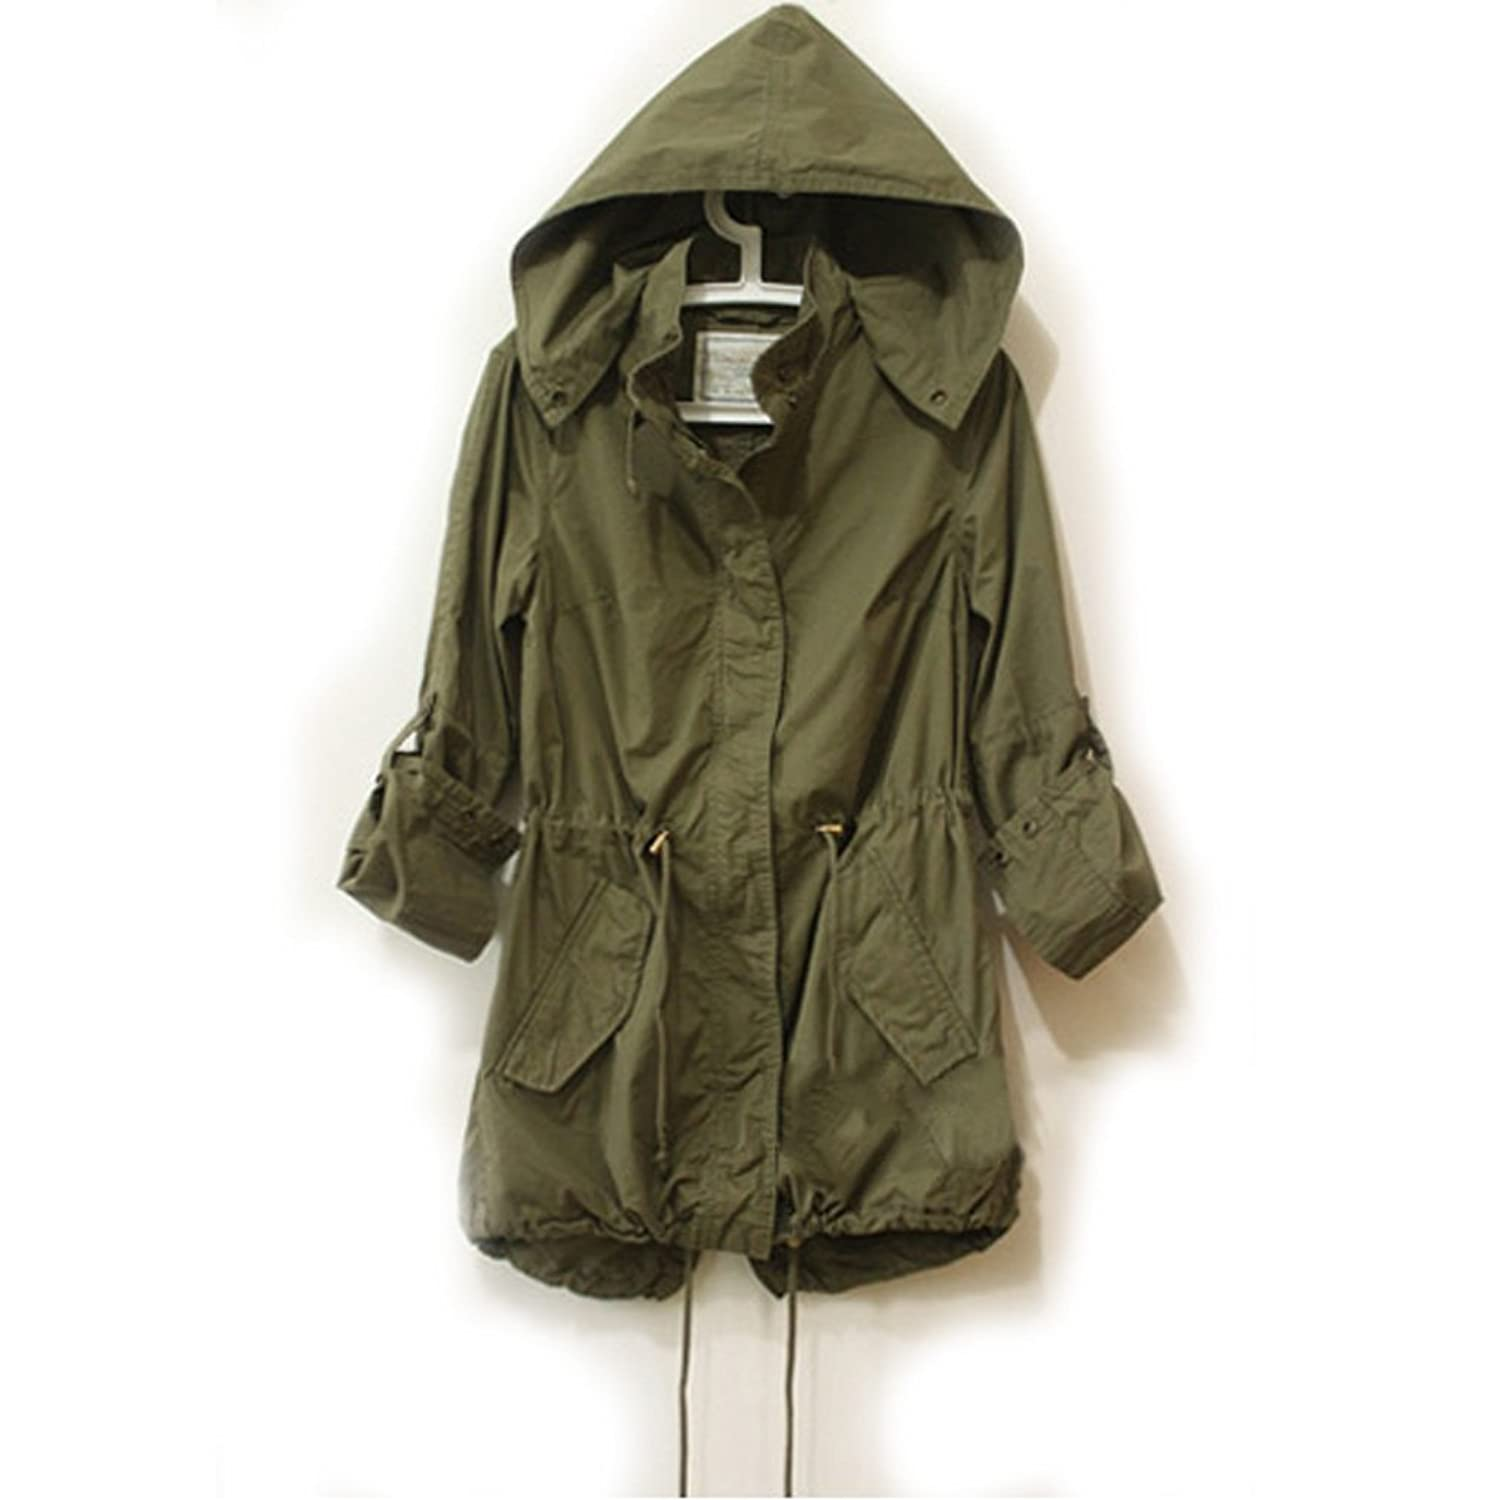 Womens Military Parka | eBay